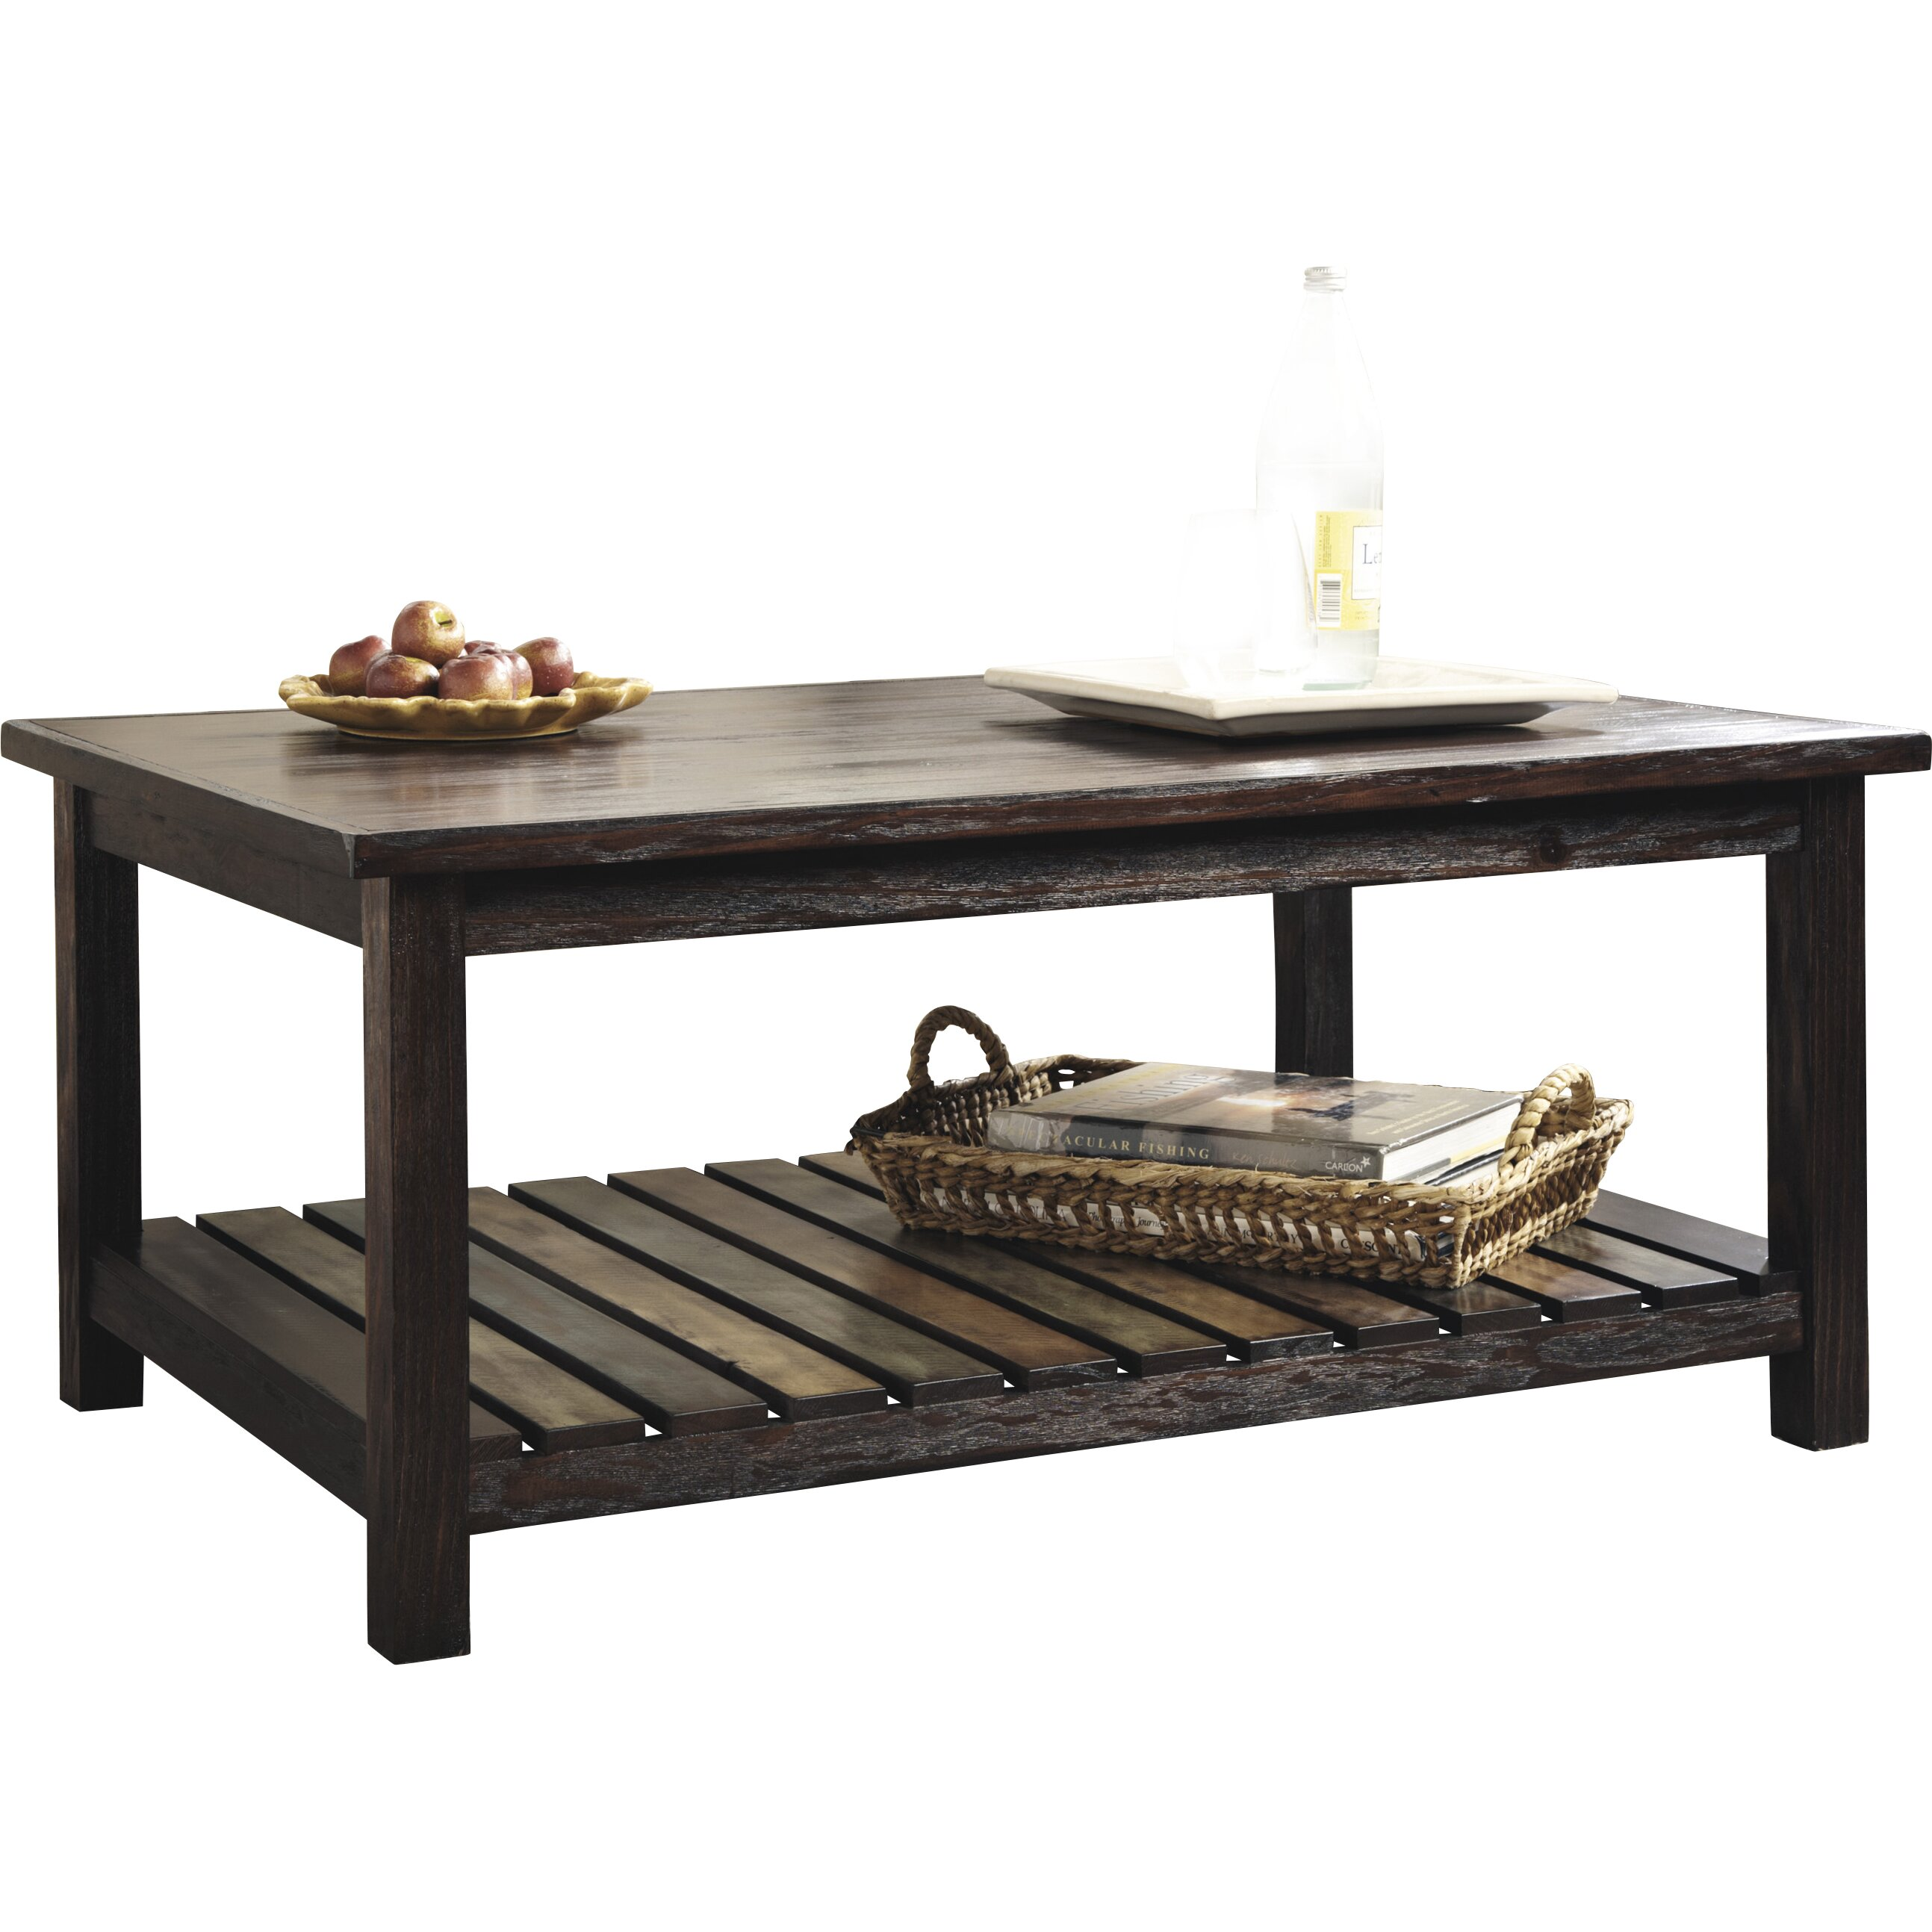 August Grove Lexington Coffee Table Reviews Wayfair